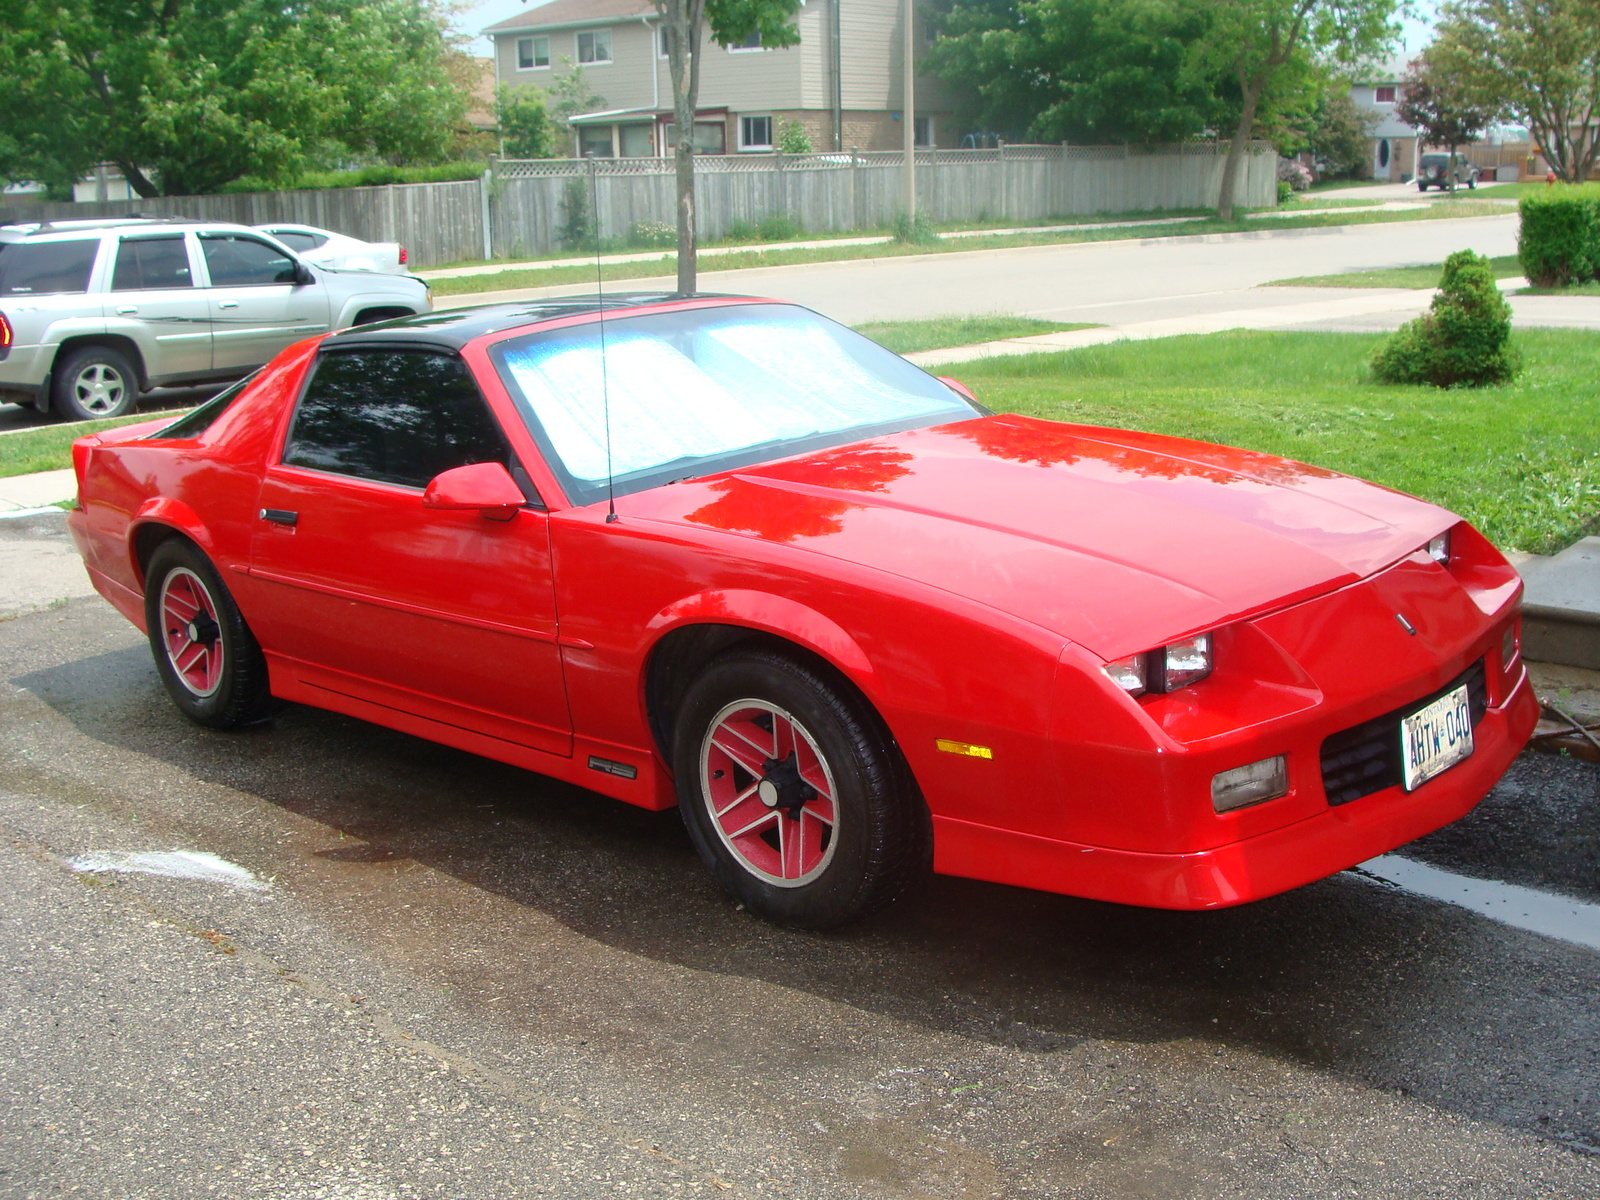 1989 Chevrolet Camaro RS Coupe picture, exterior